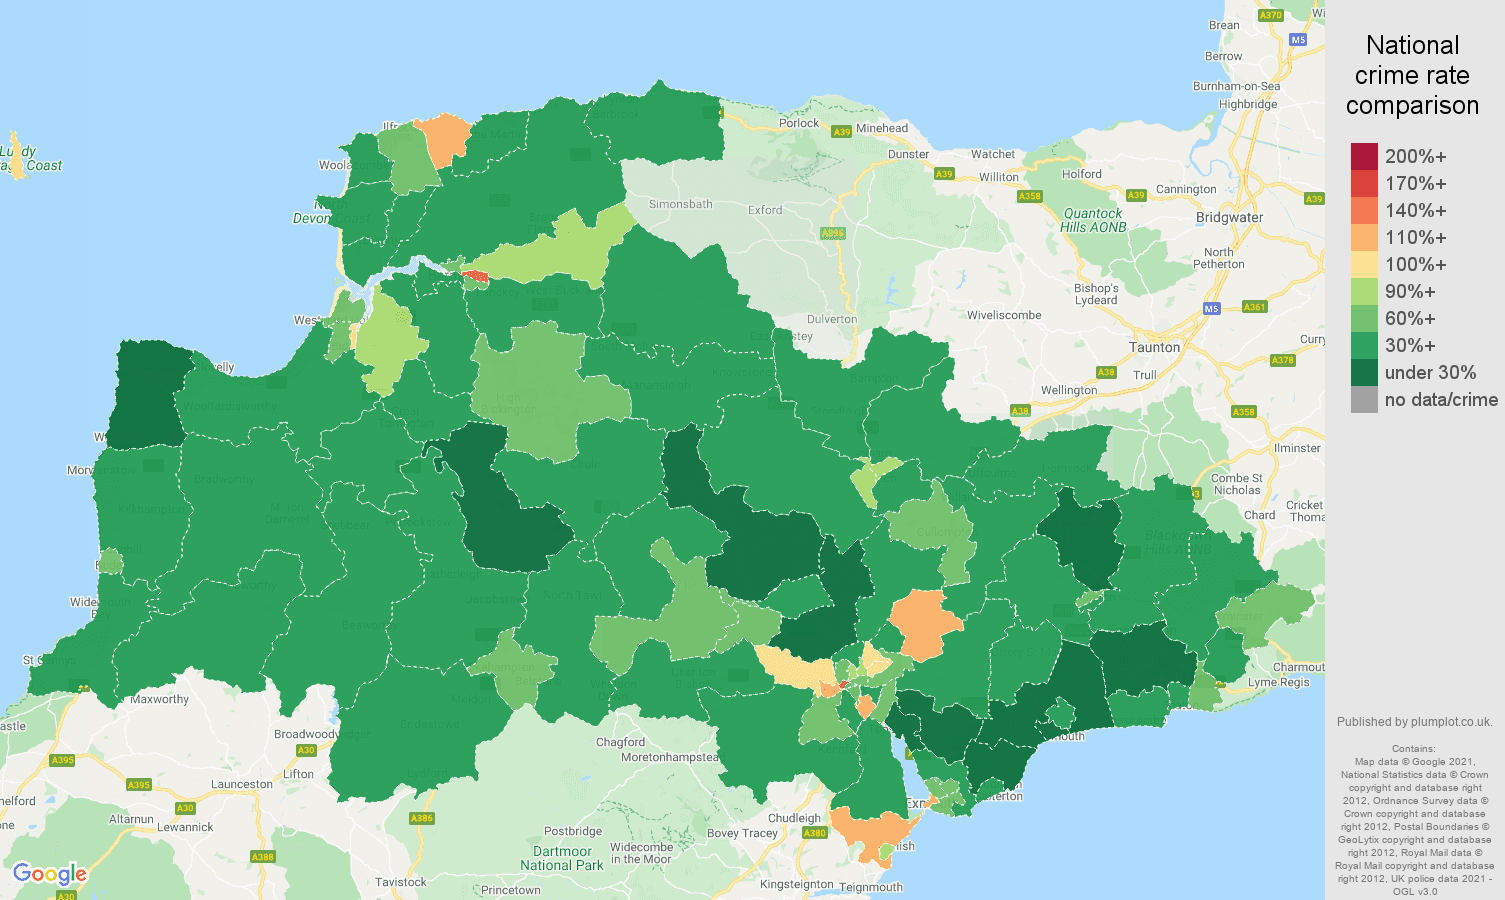 Exeter violent crime rate comparison map